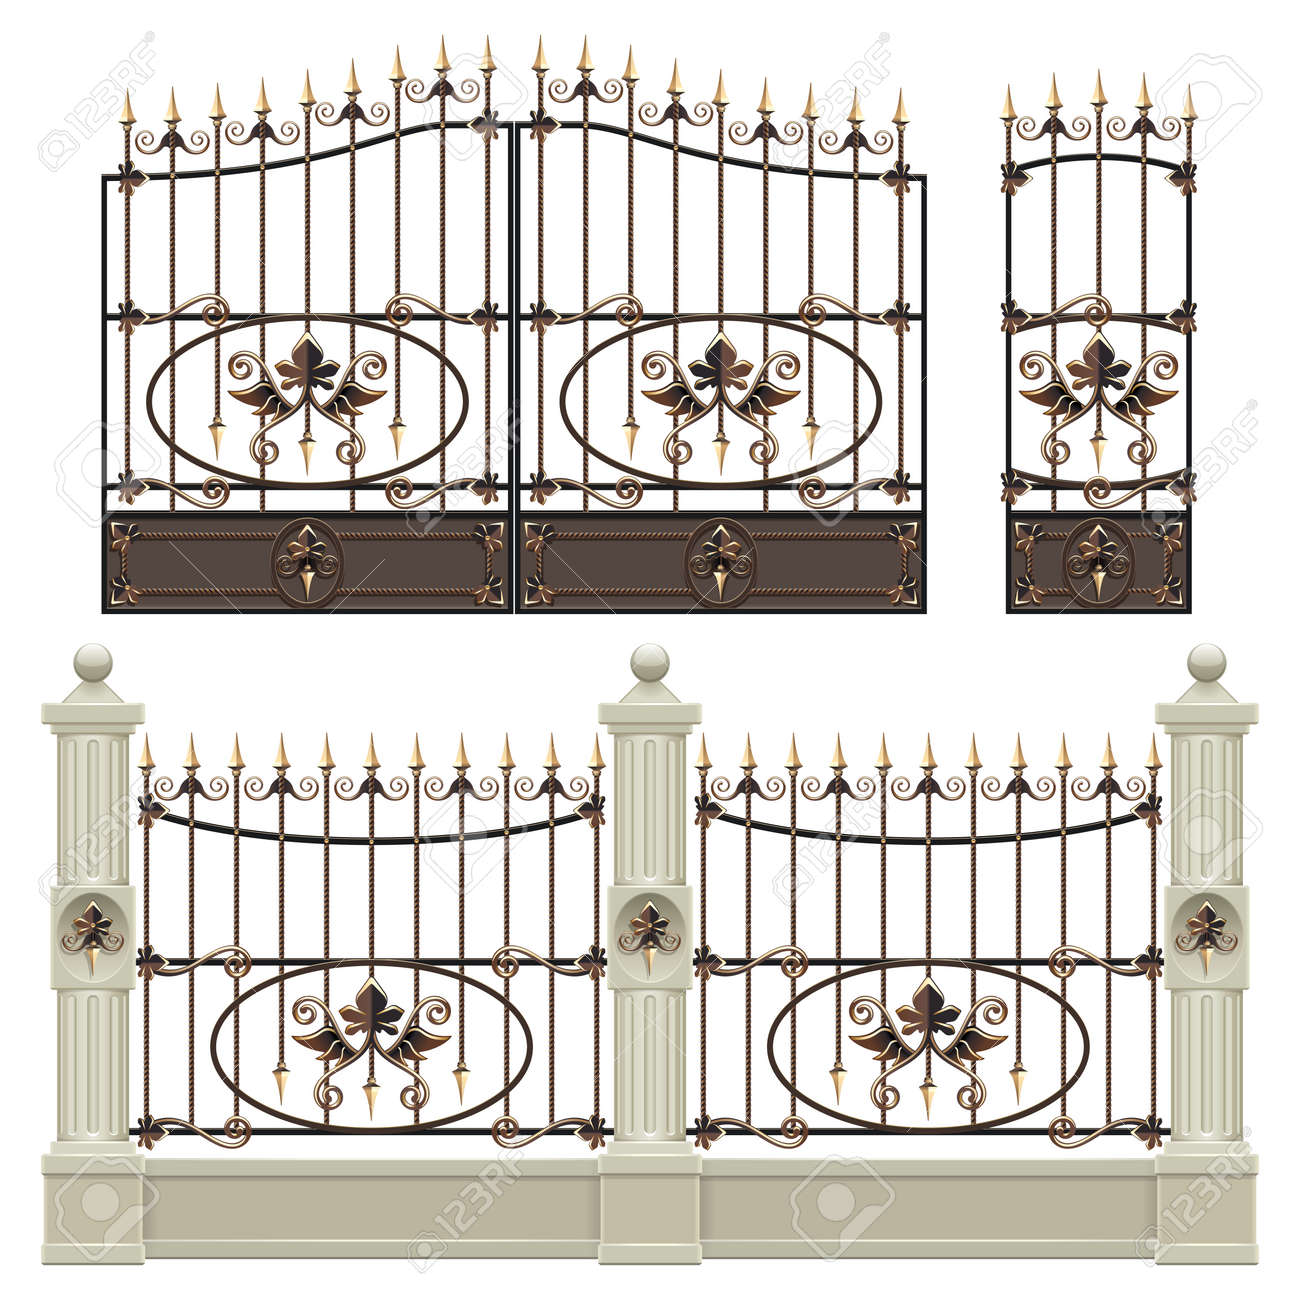 Palace Gate with Fence - 169453759